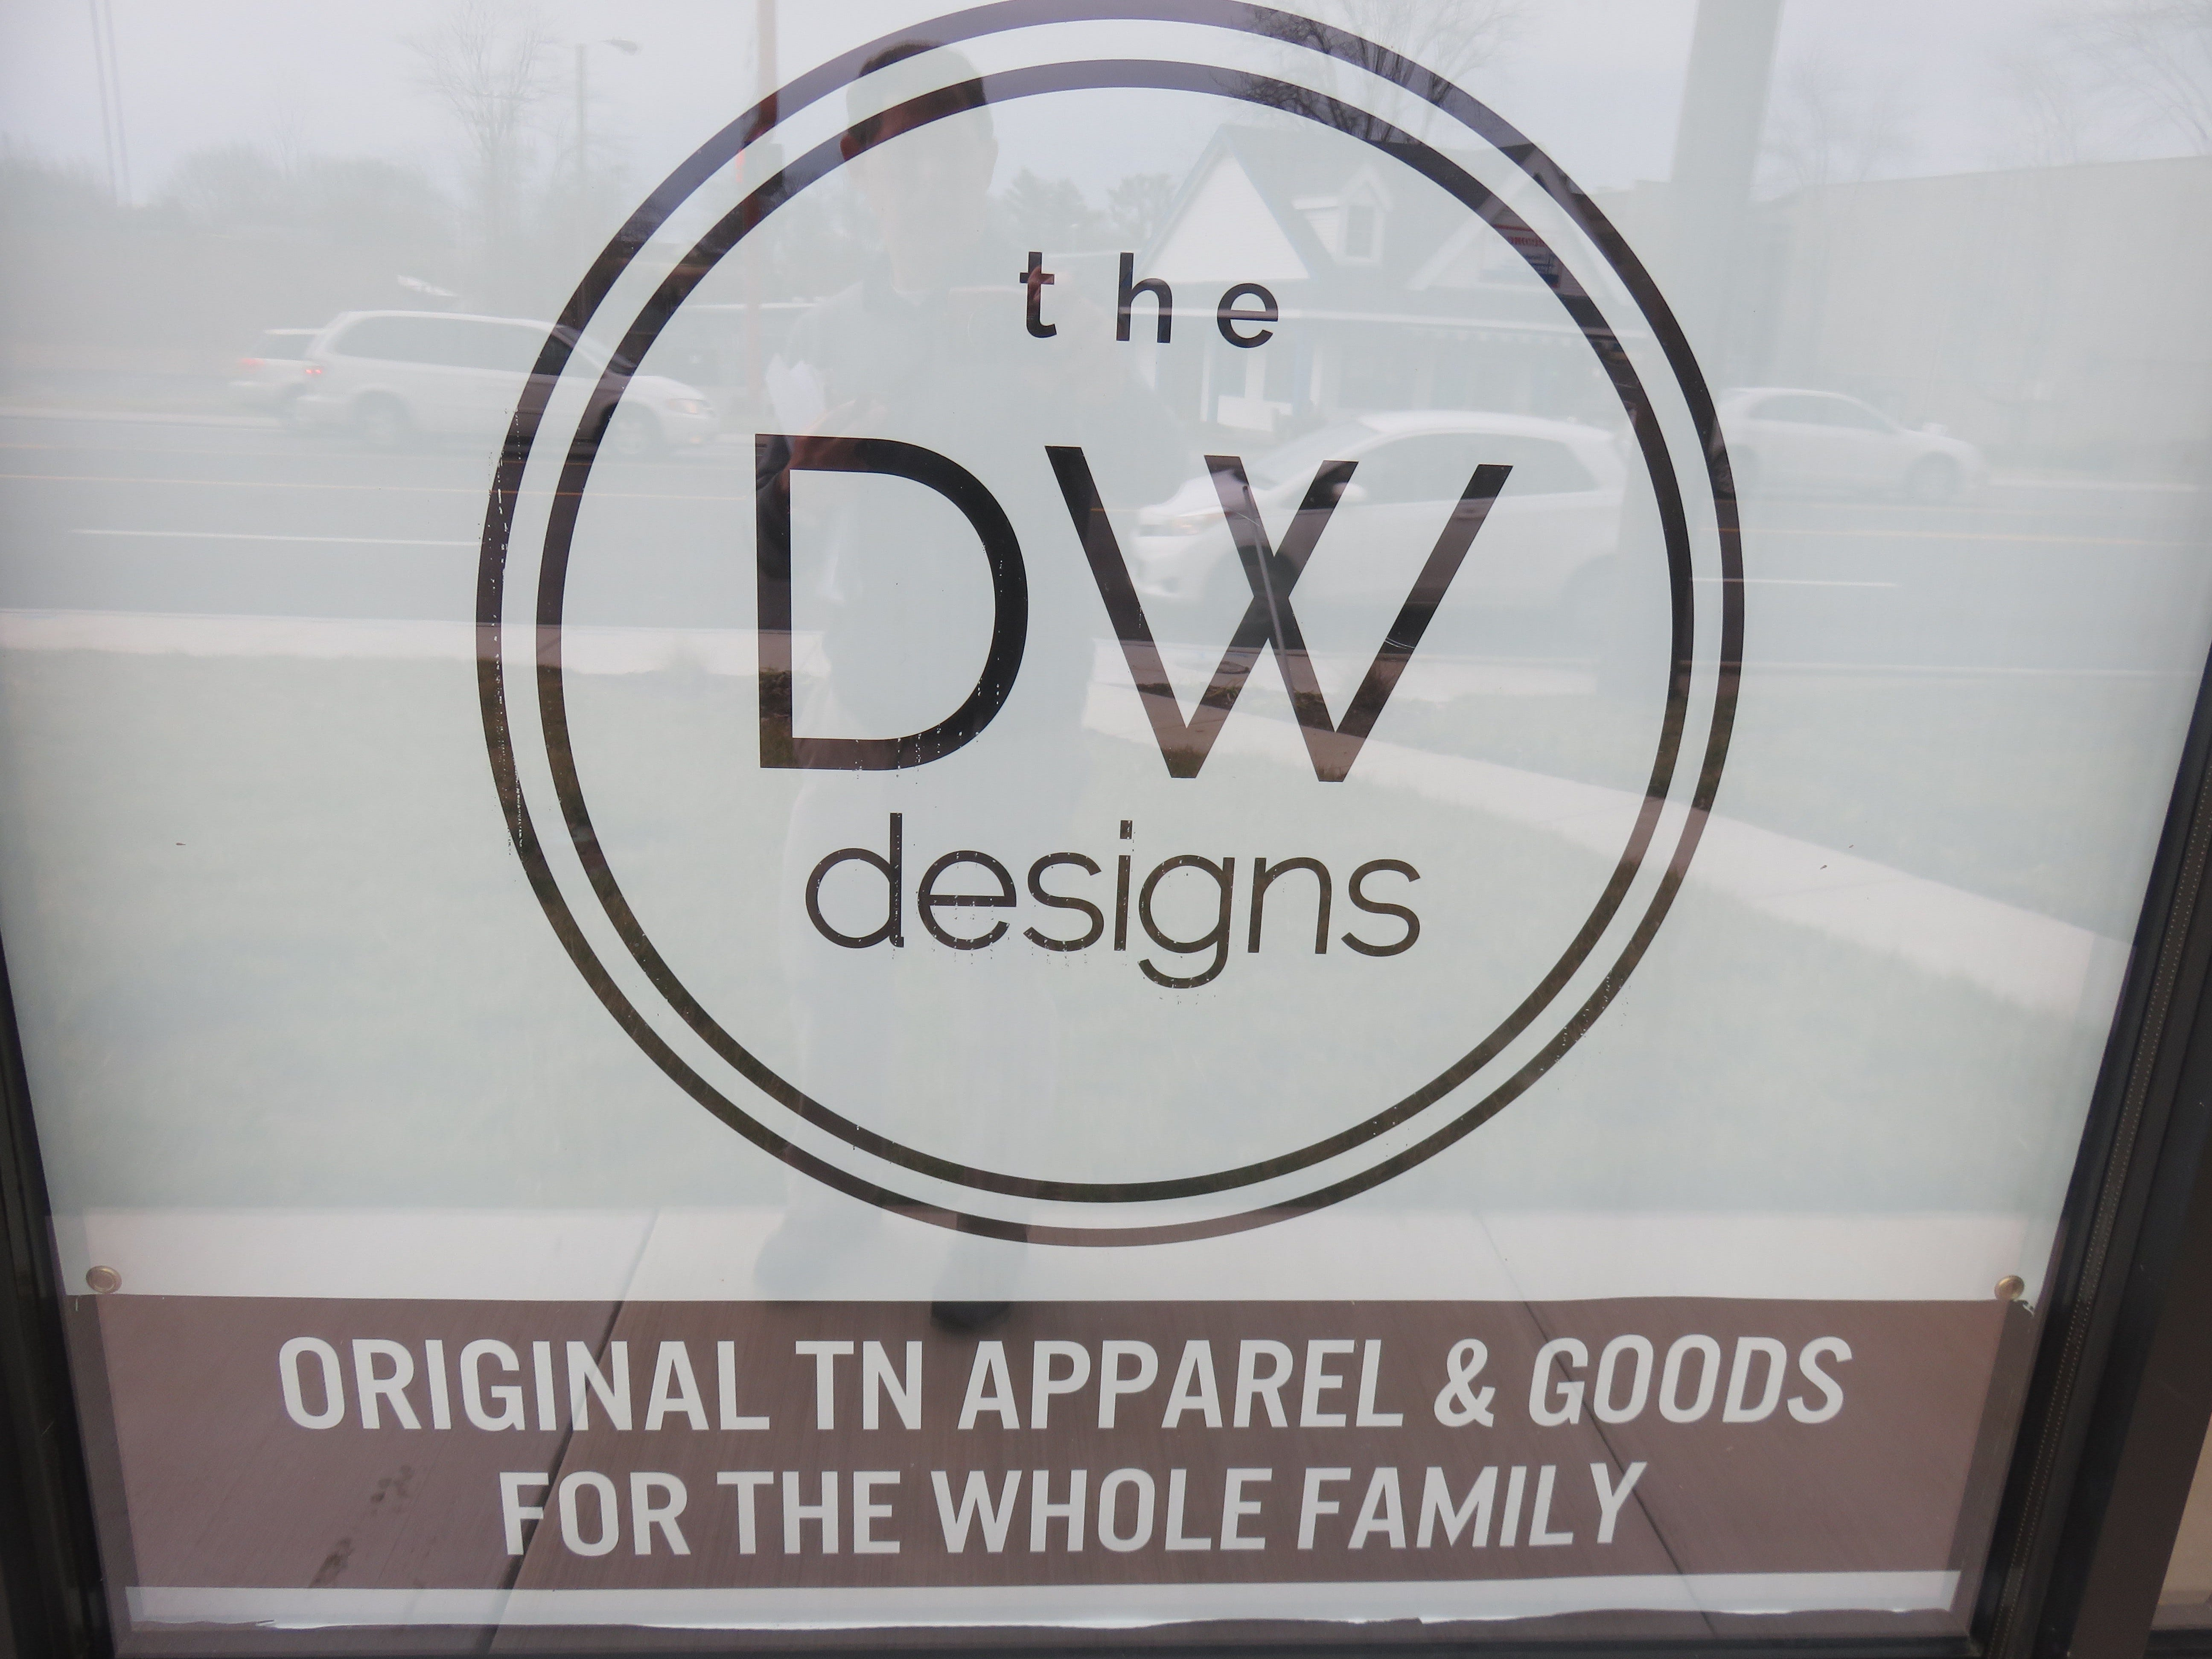 A sign advertising the new business hangs on the glass front of the building.